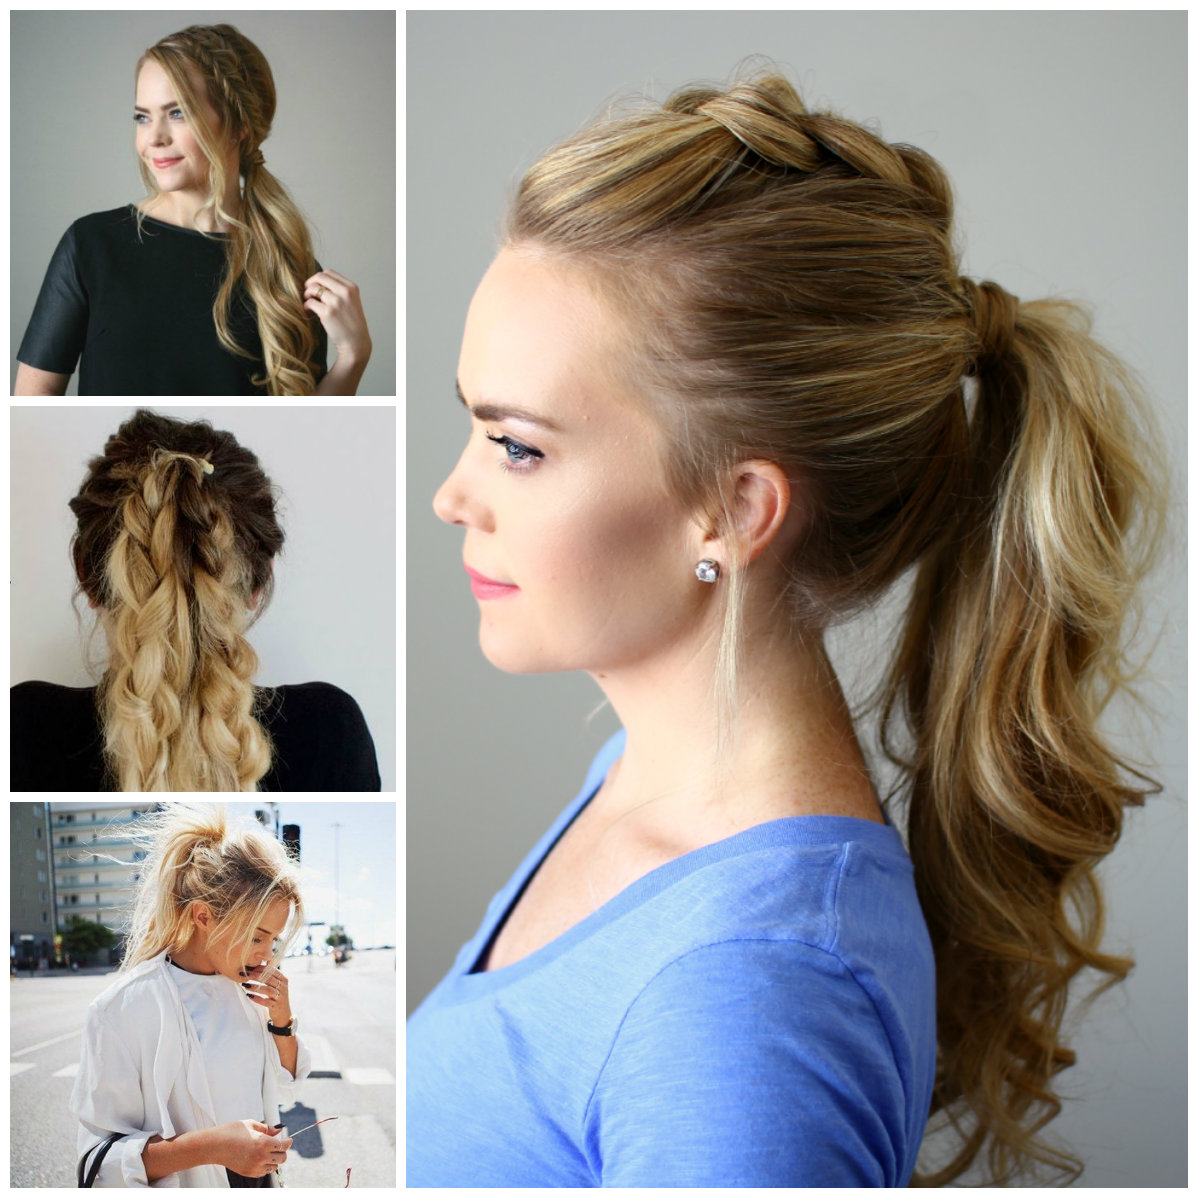 Fabulous Summer Hairstyles 2017 Haircuts Hairstyles And Hair Colors Short Hairstyles For Black Women Fulllsitofus